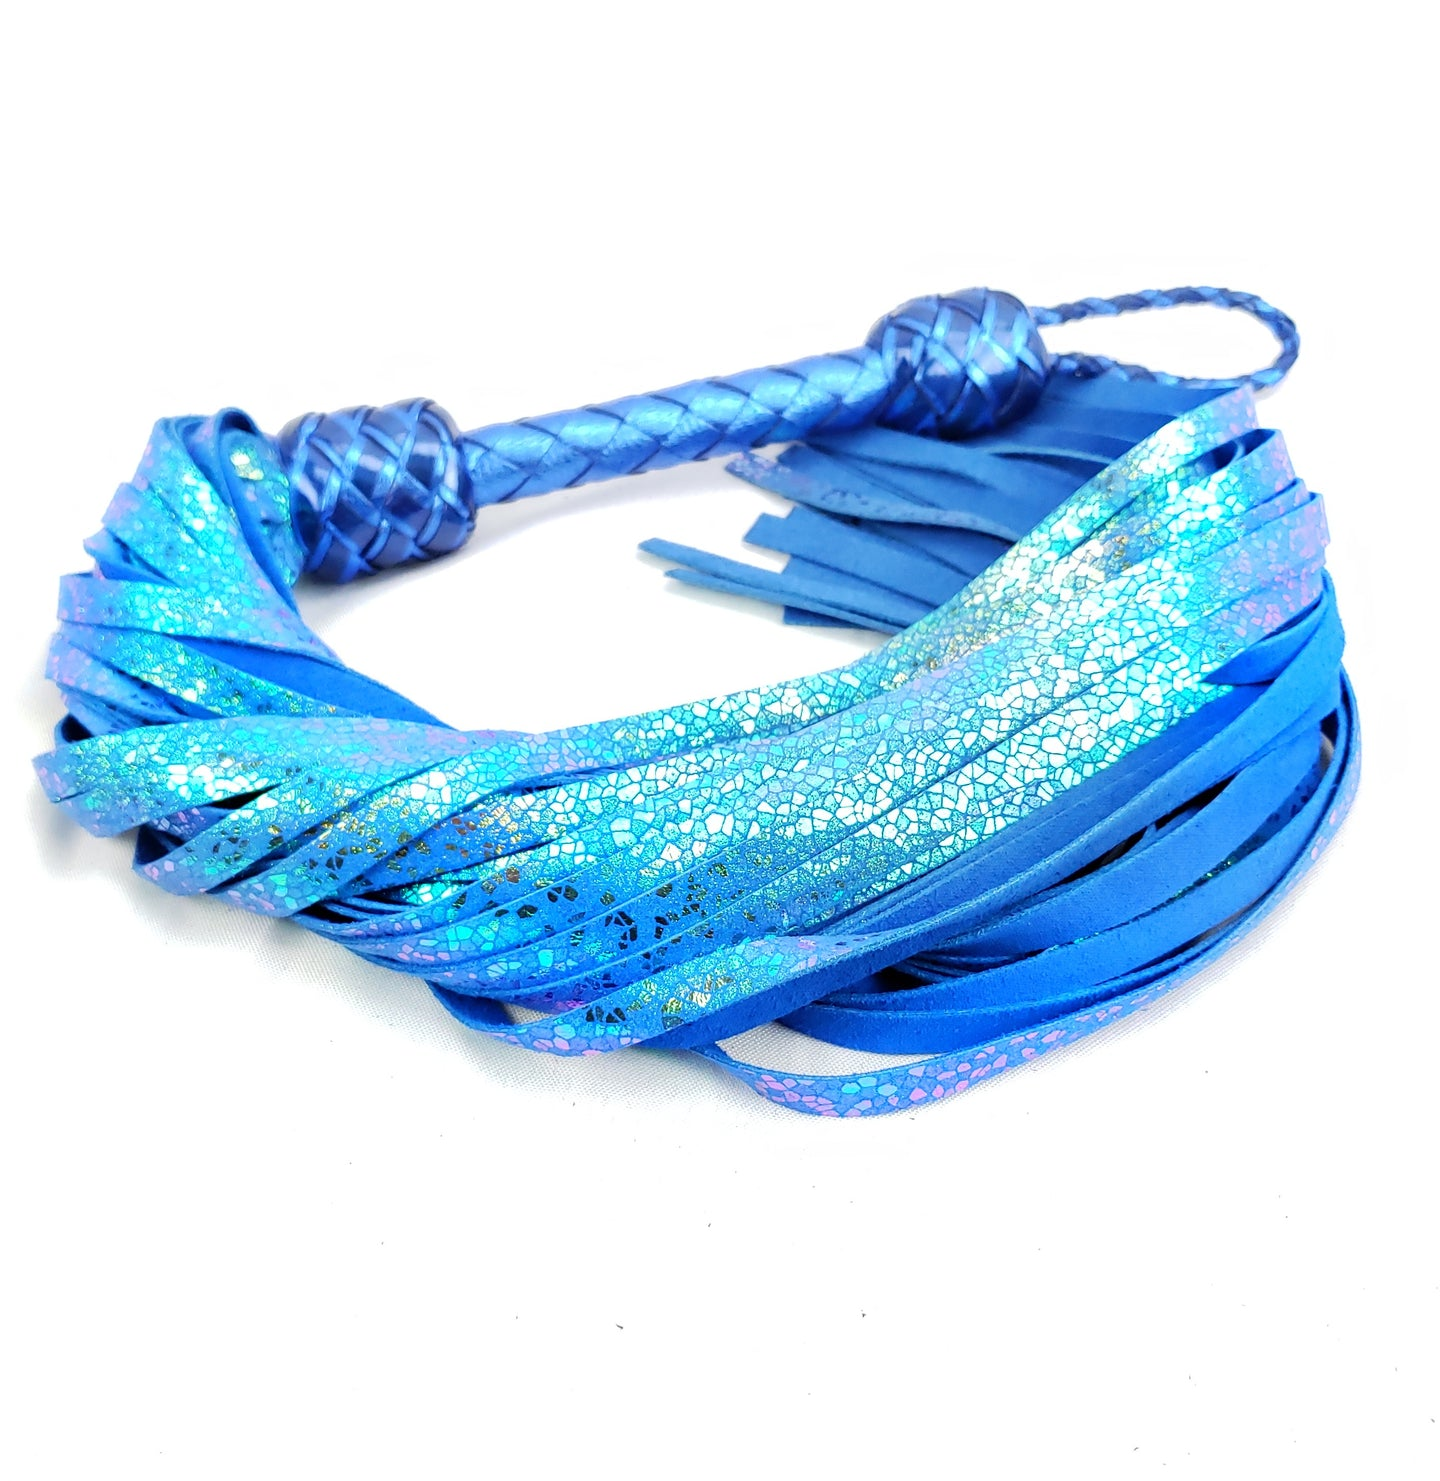 Stained Glass Floggers in Blue